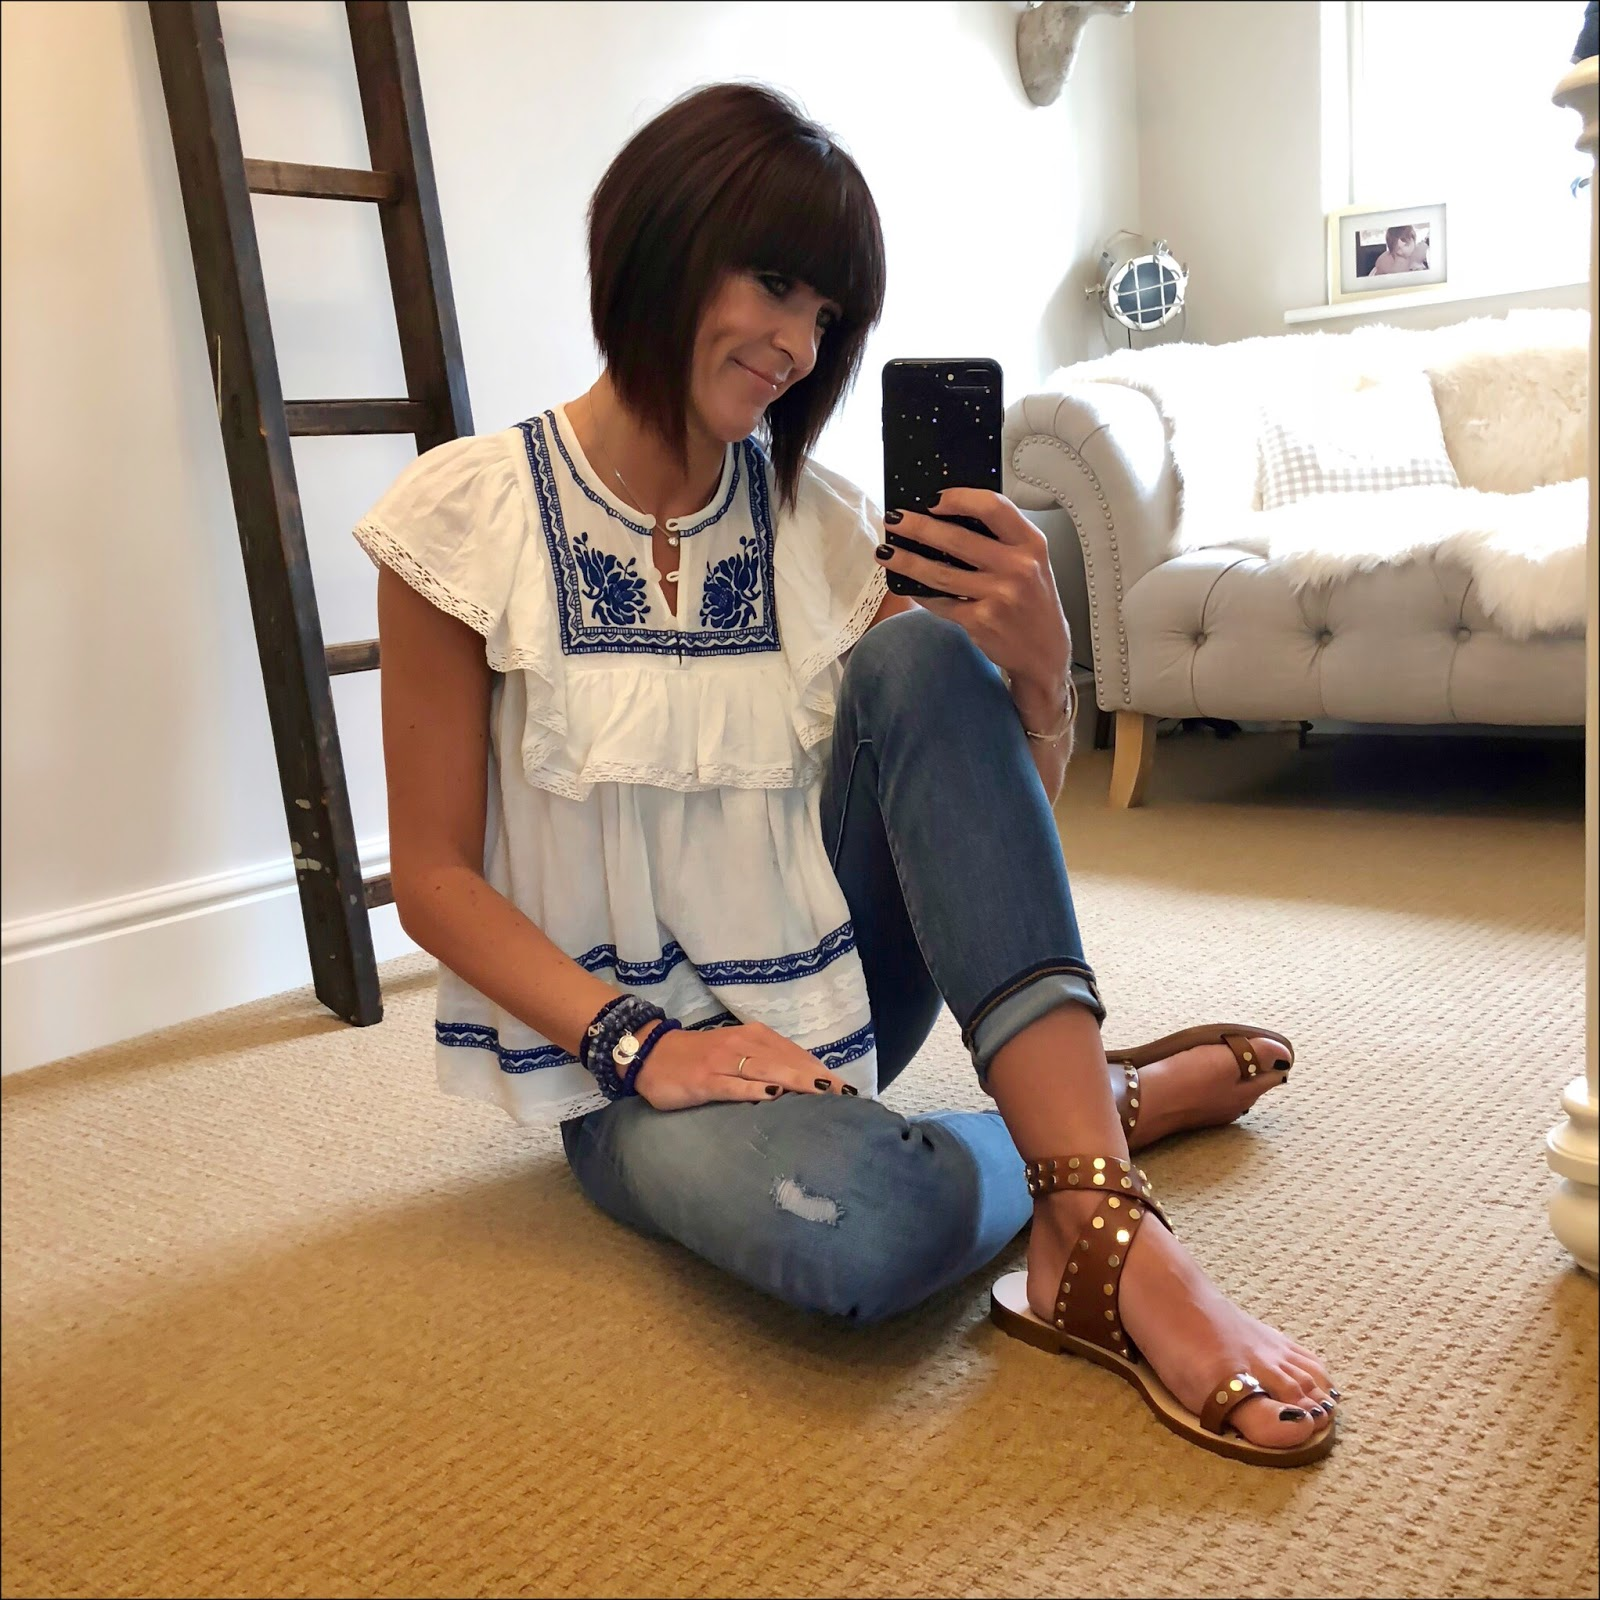 my midlife fashion, j crew 8 inch toothpick skinny jean in medium wash, basalt sarah summer studded sandals, sea embroidered top